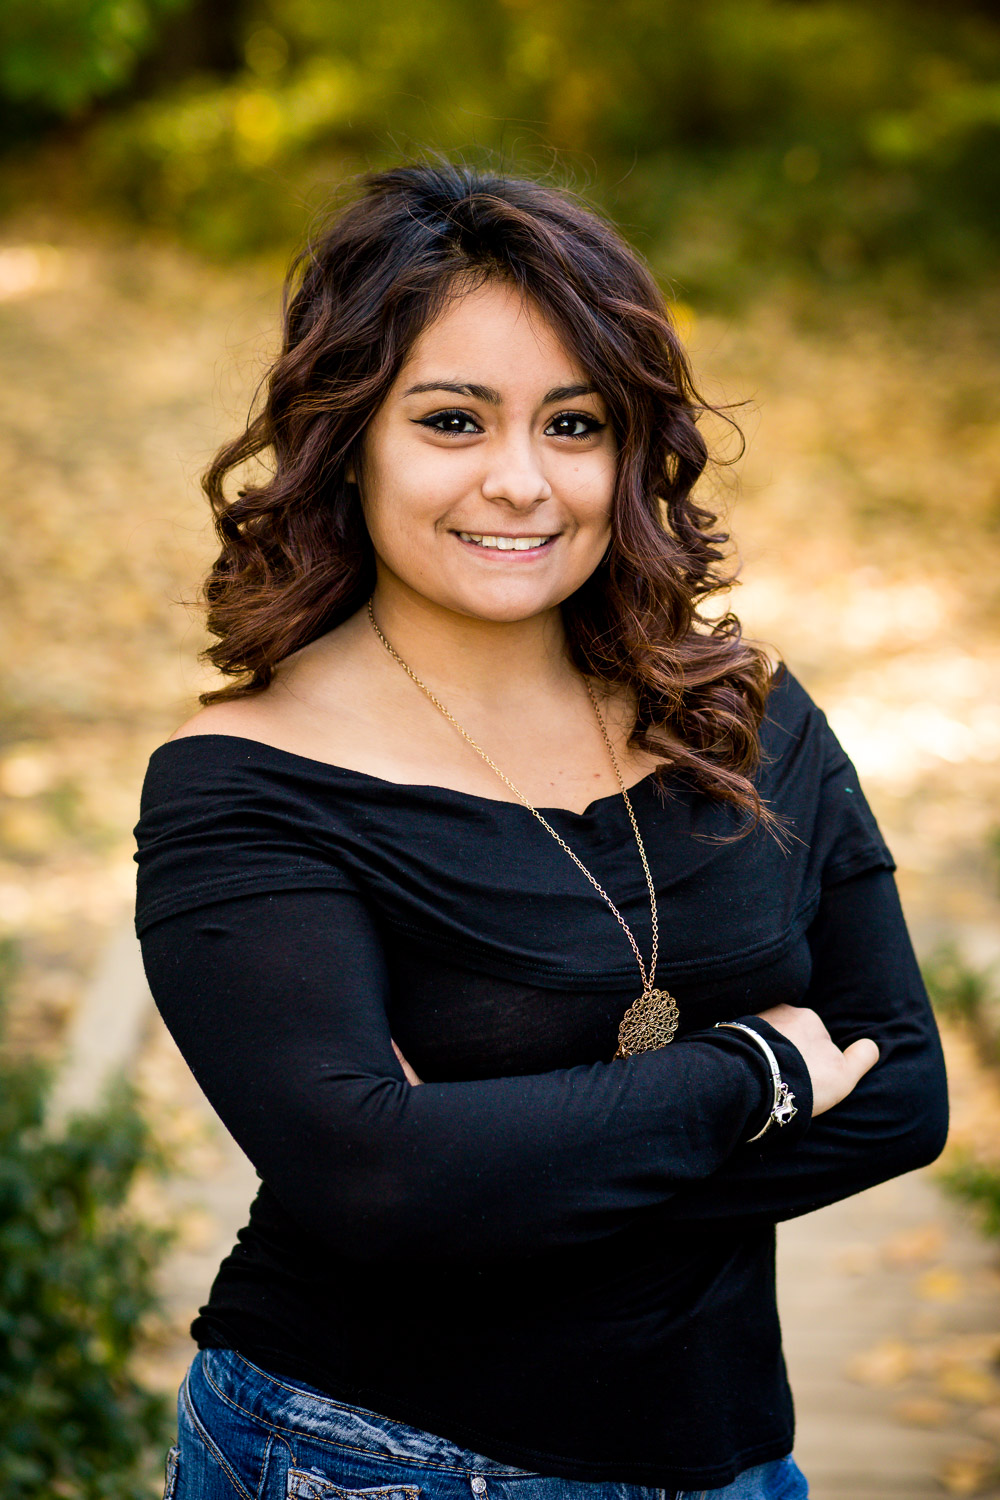 denver_senior_portrait_photographer_kathleen_bracken_photography-35.jpg